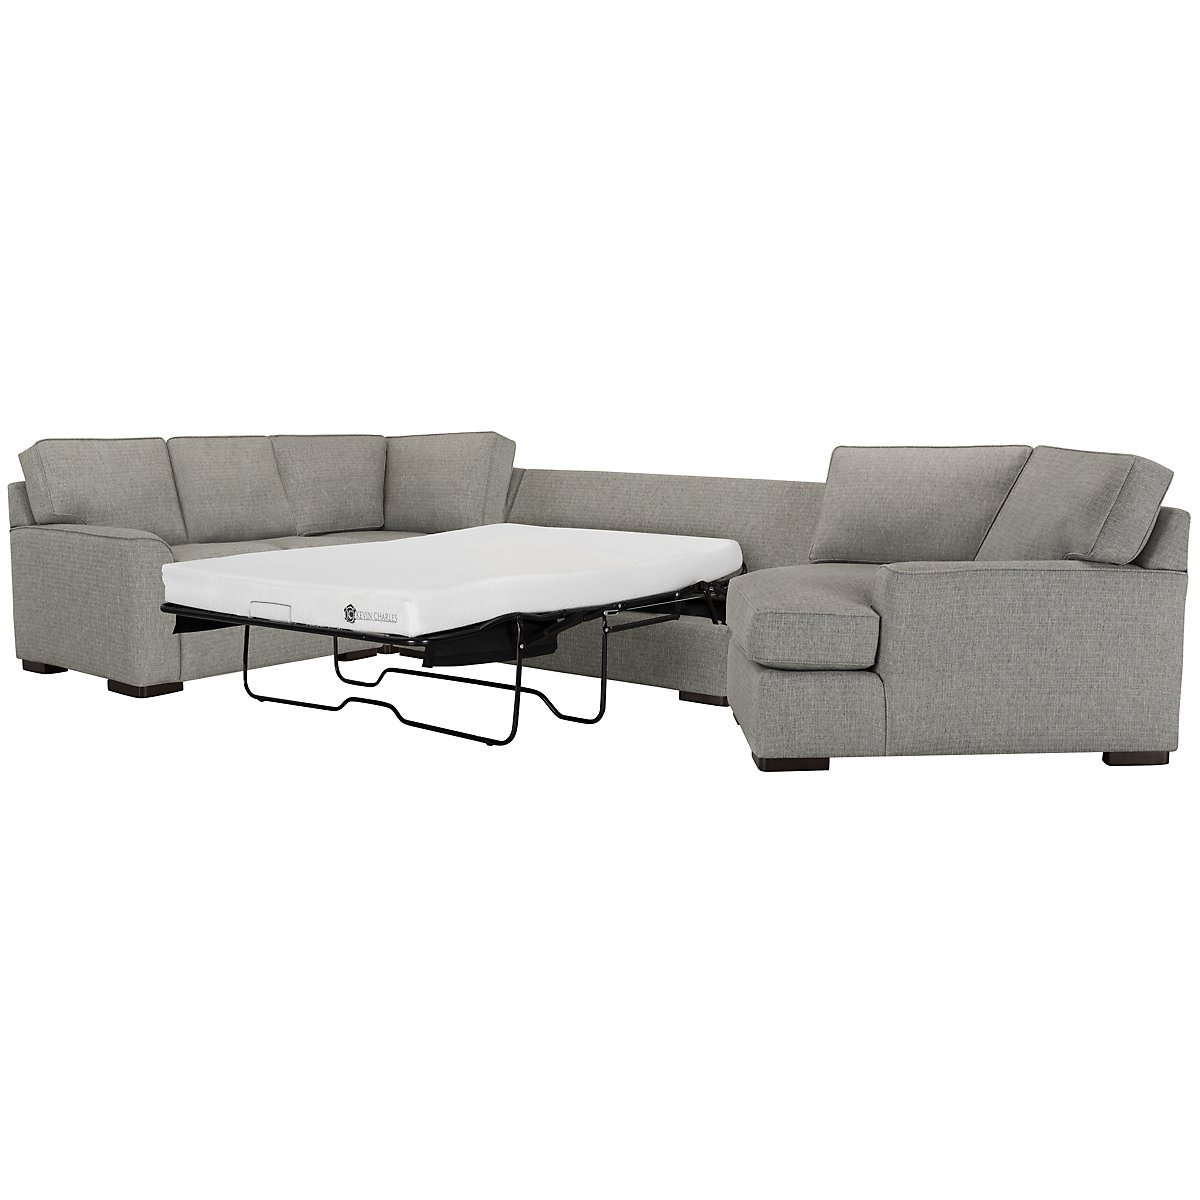 Austin Gray Fabric Right Cuddler Memory Foam Sleeper Sectional